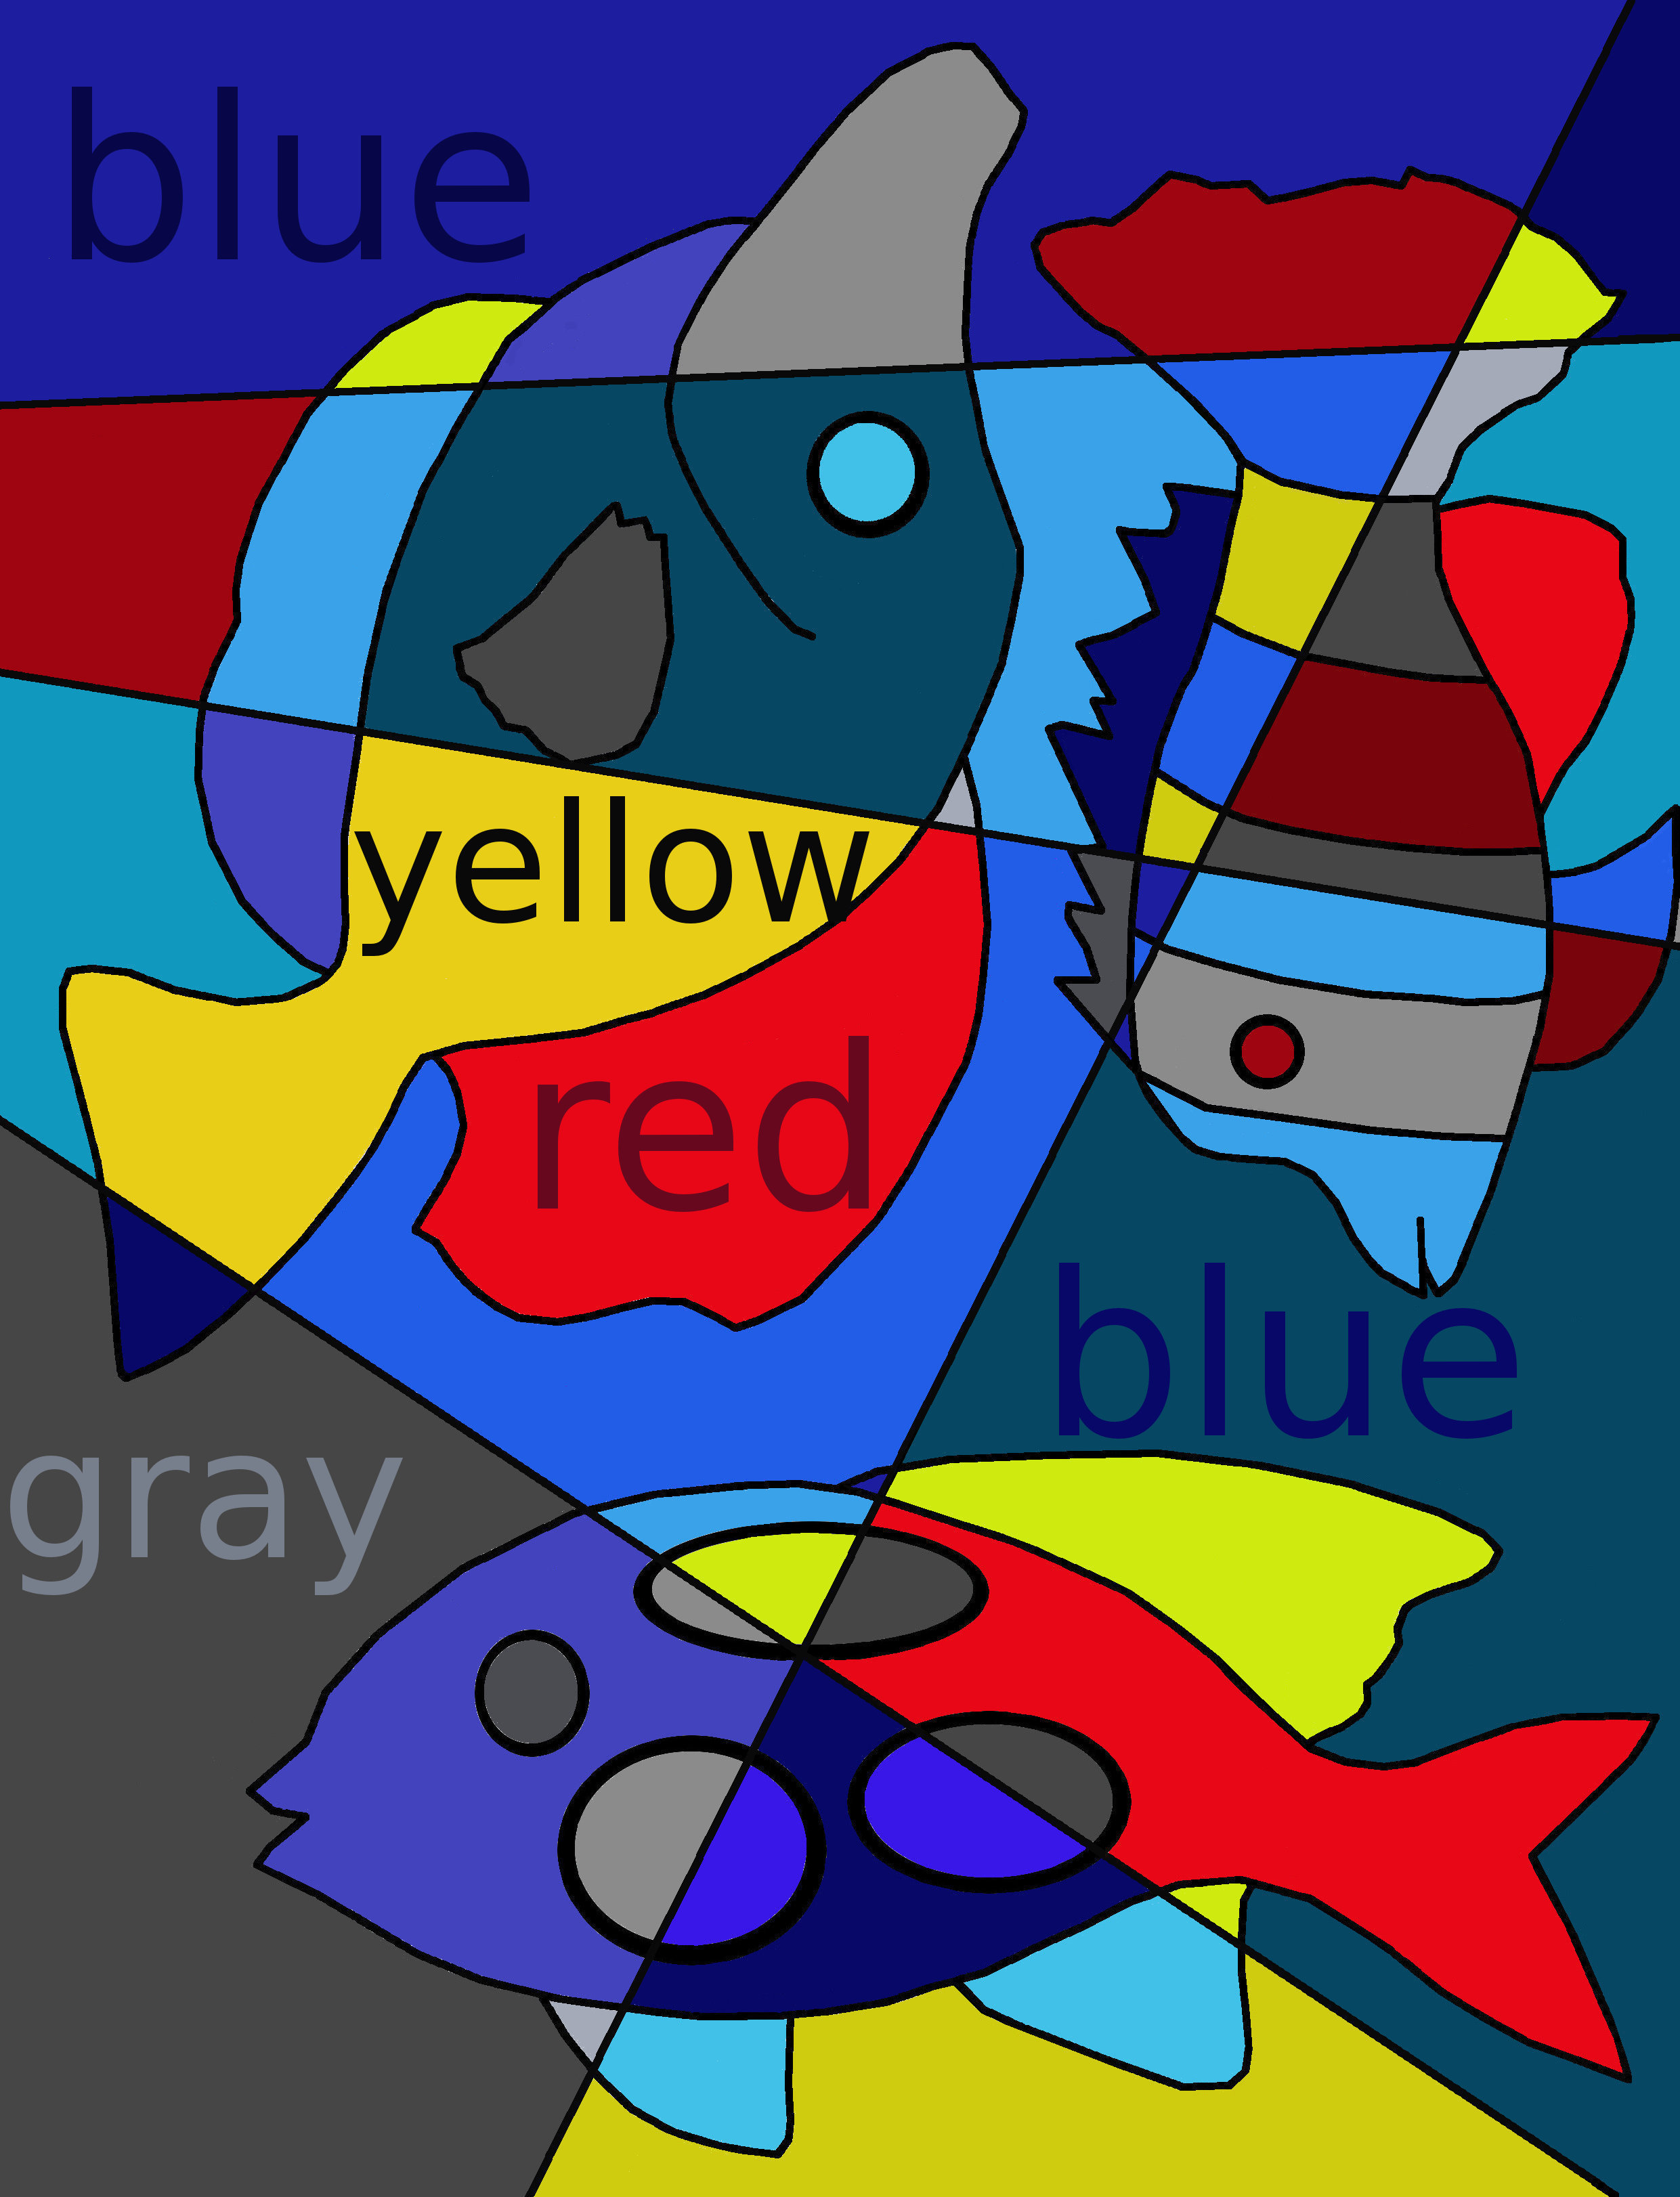 Blue, yellow, red, gray